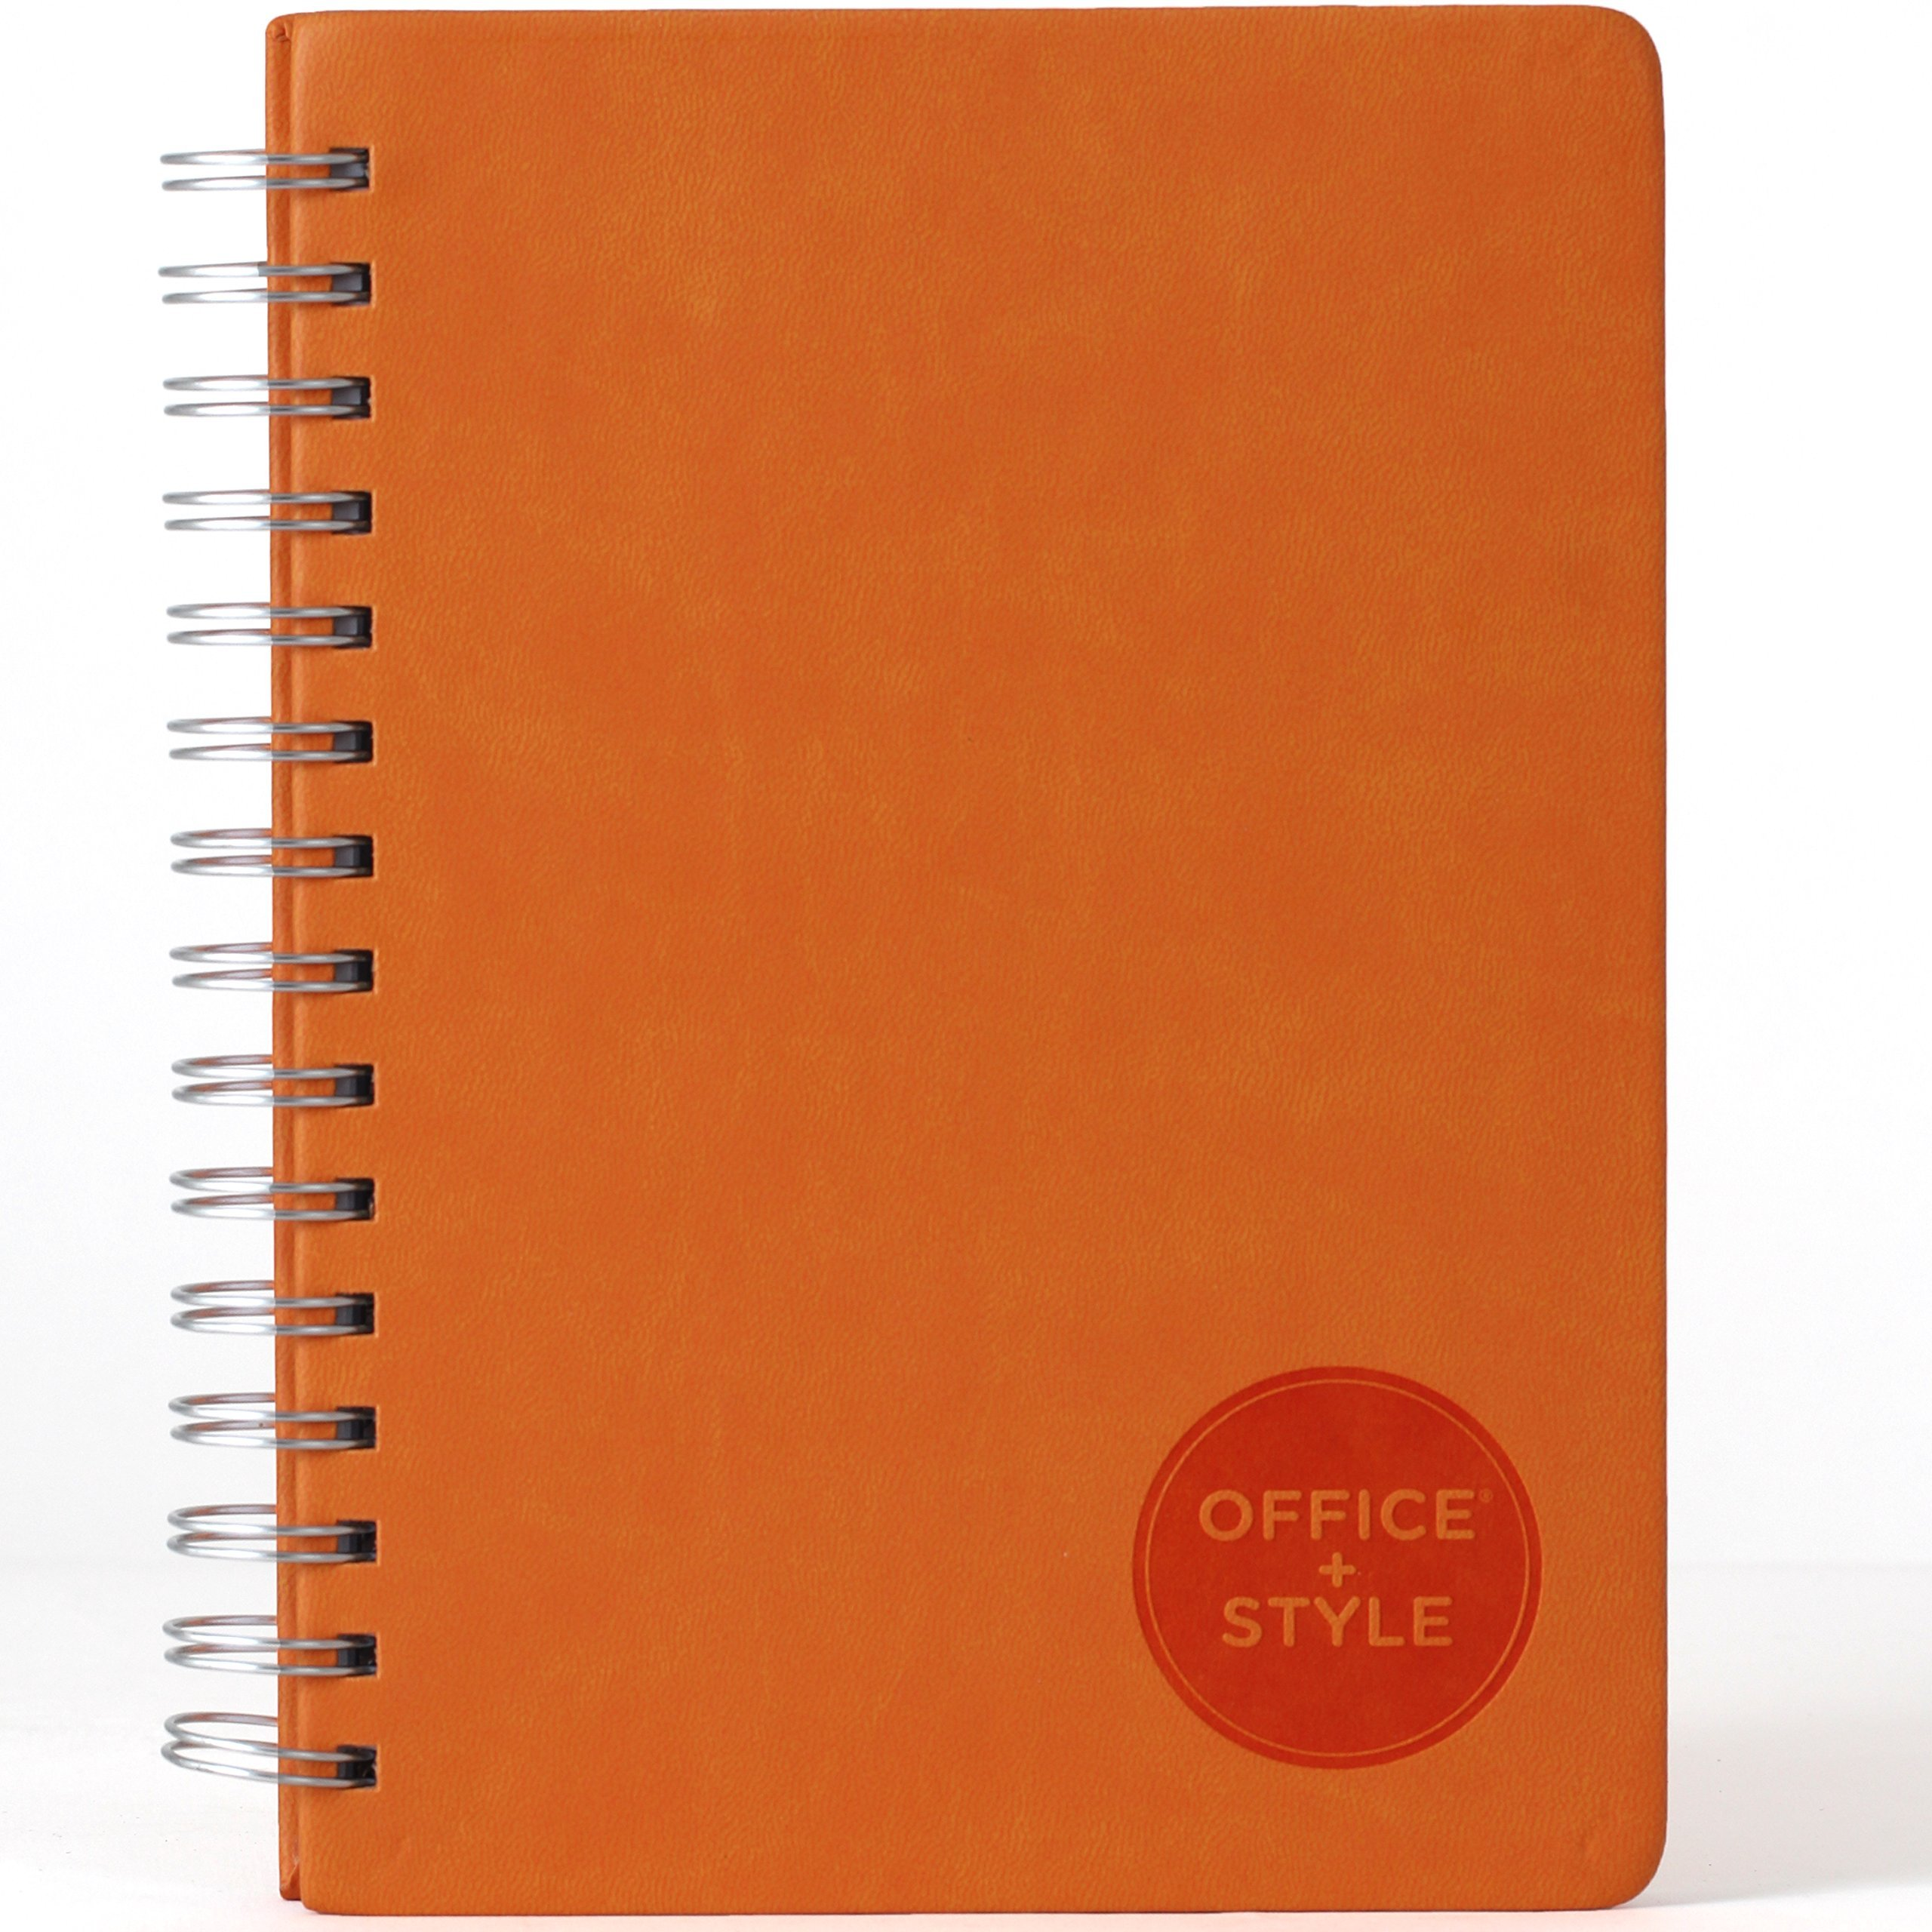 Office+Style PU Personal Graph Notebook with Double Spiral Binding, 96 Sheets, Orange (OS3-NBORG) by Office+Style (Image #2)